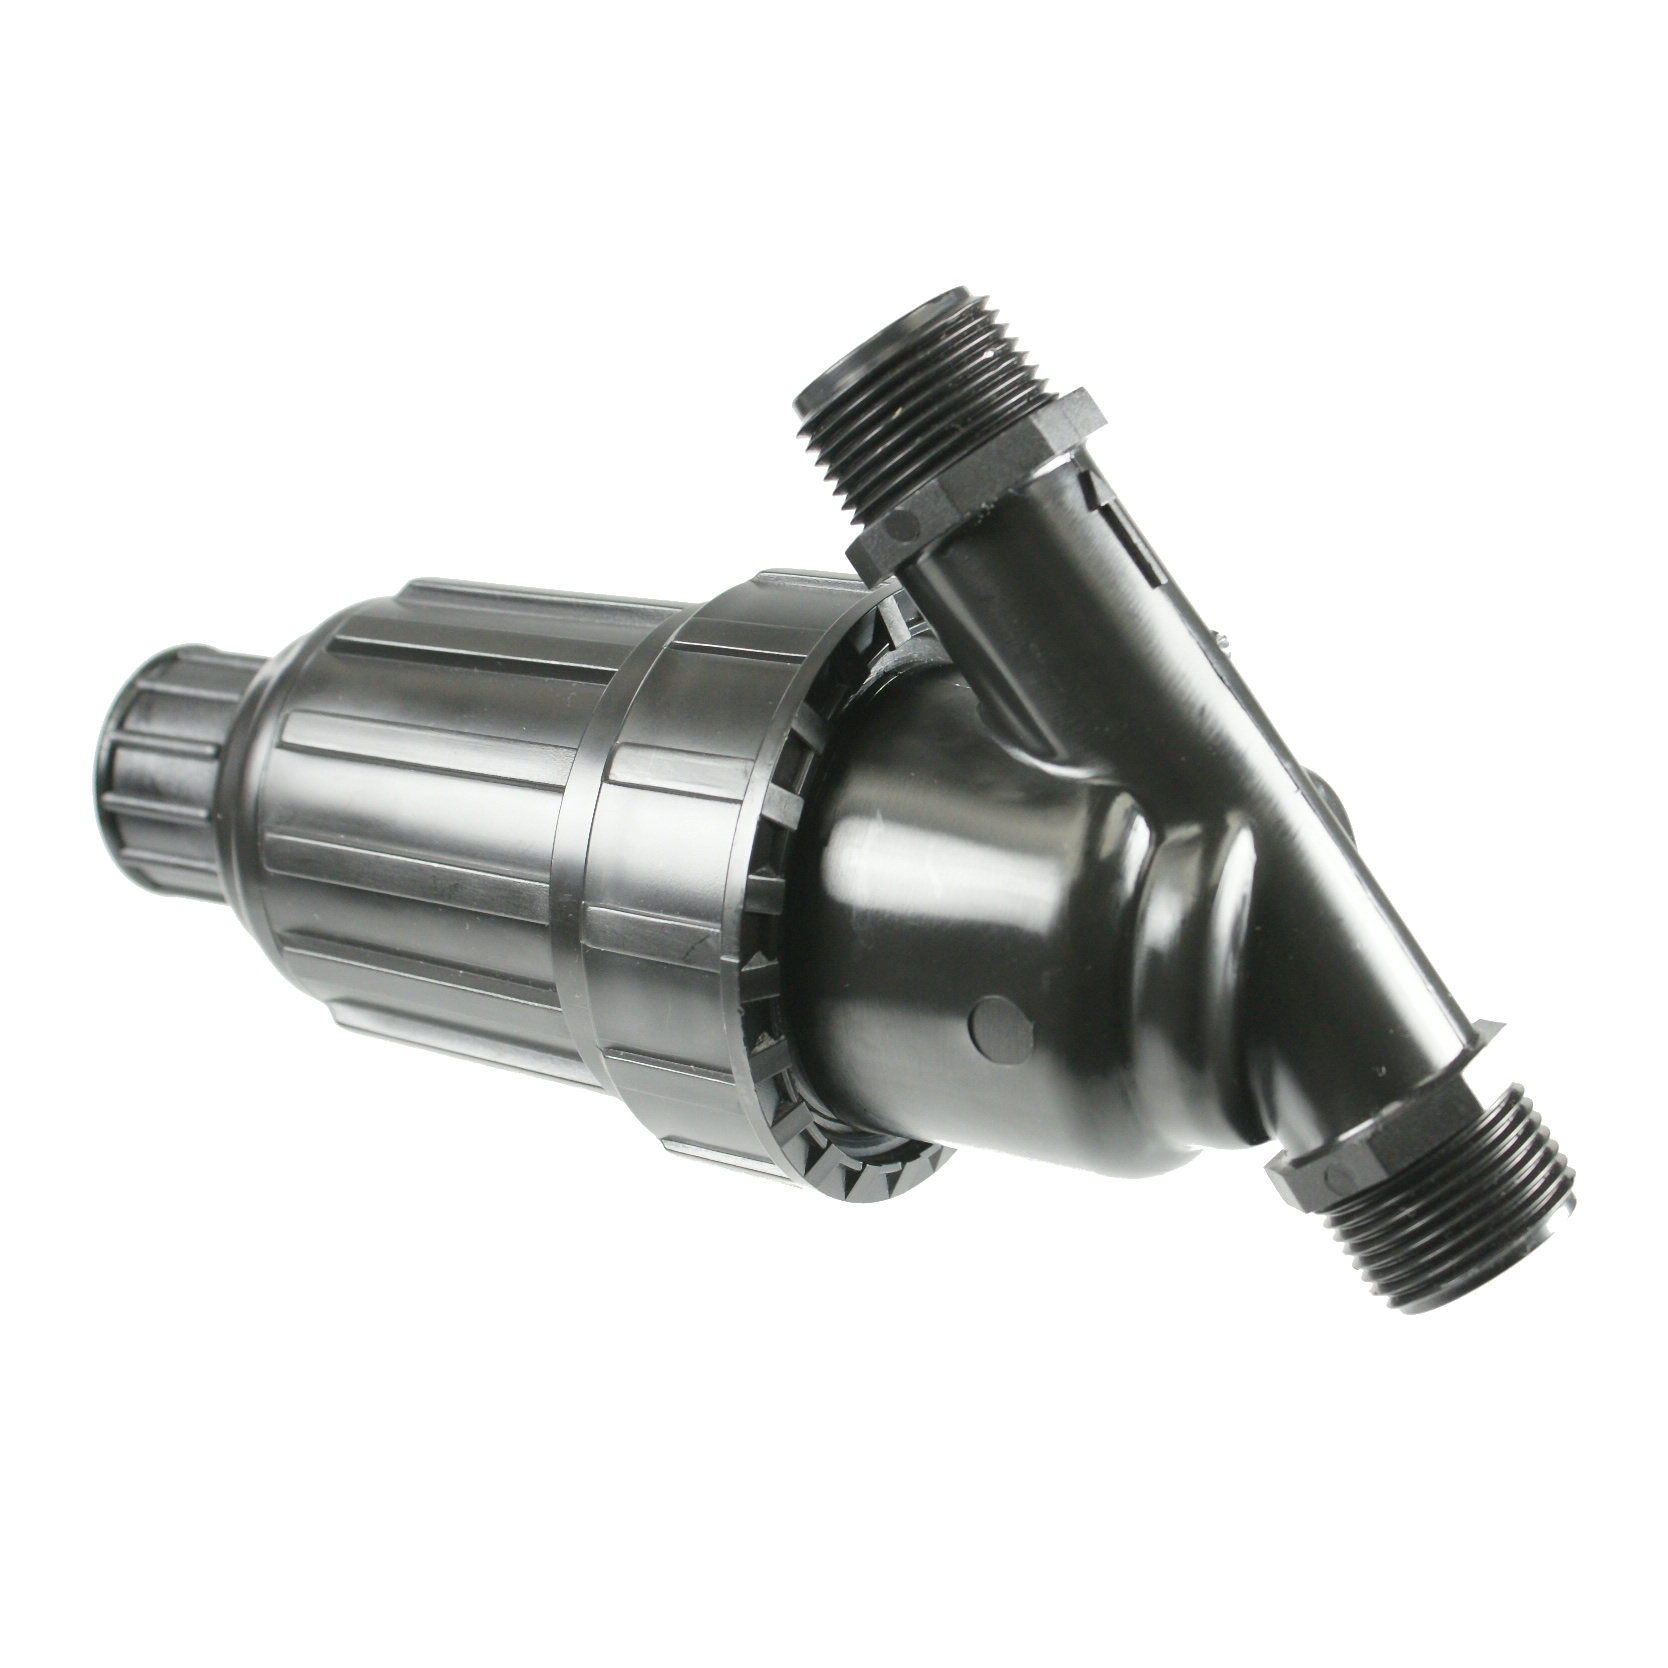 "1"" Pipe Thread Filter"